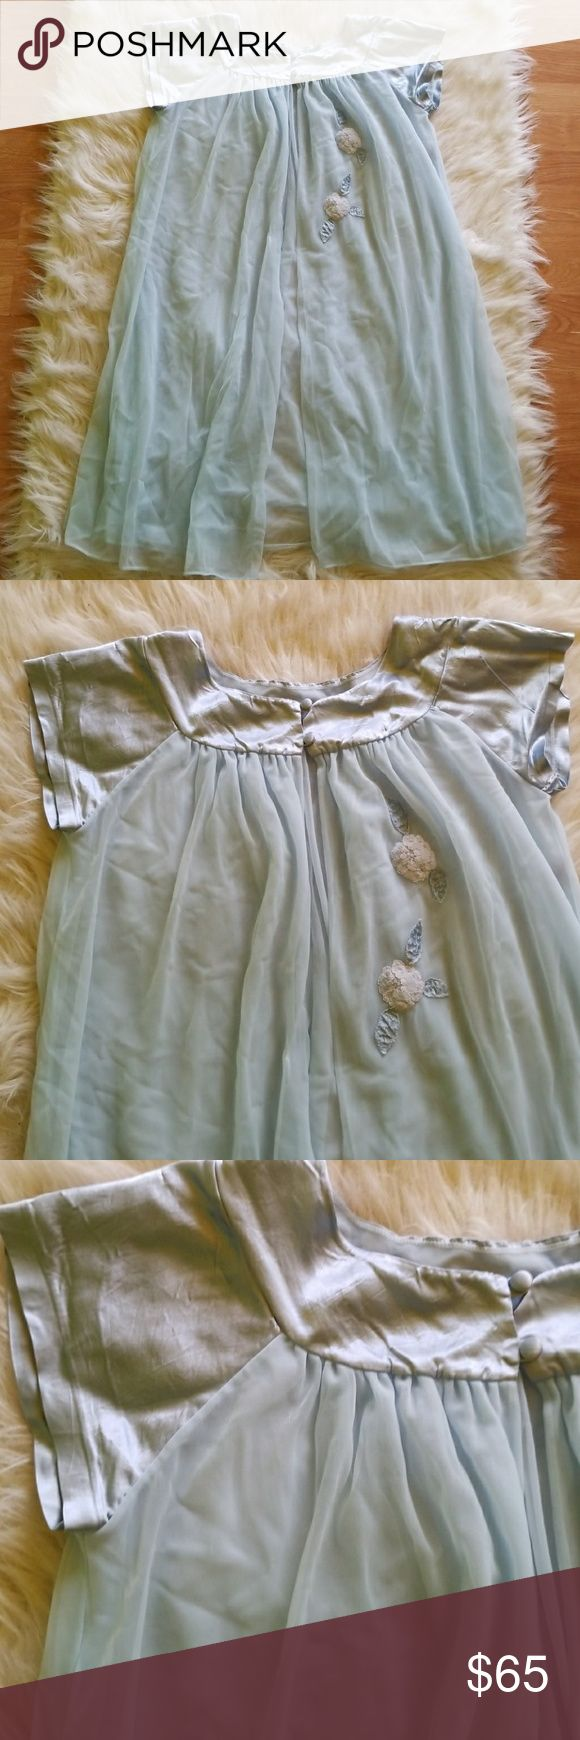 💙50's True Vintage Sears Baby Blue Sheer Babydoll Vintage Baby Blue Sheer Babydoll nightgown in Mint condition! This piece is absolutely devine!  Features silky satin sleeves and neckline & beautiful rose embellishments.  100% Nylon  Have questions? Just ask away!  Thanks for looking! 💋 Sears Intimates & Sleepwear